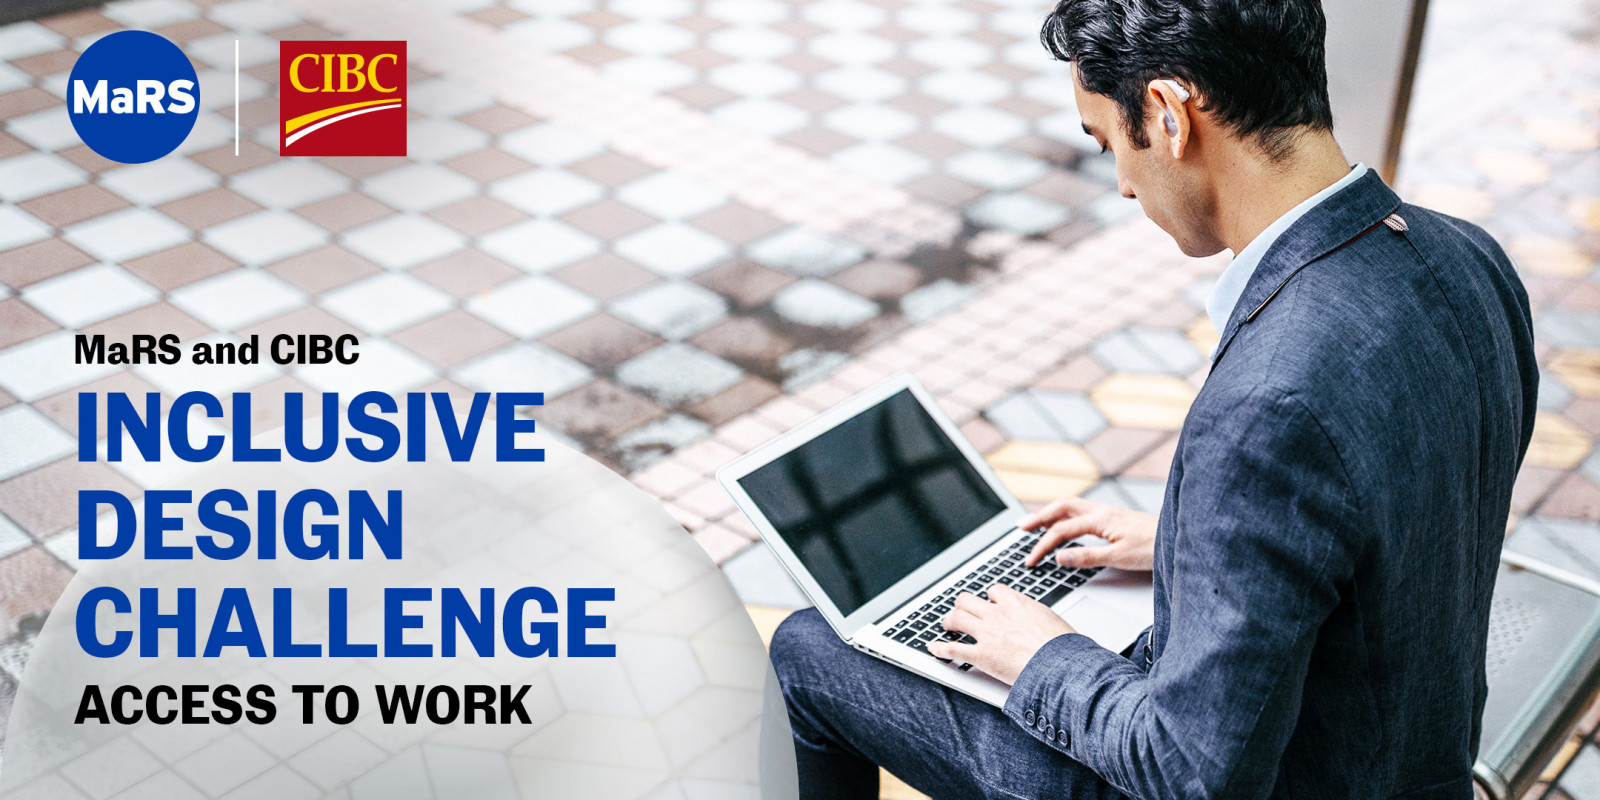 Inclusive Design Challenge_Access to Work